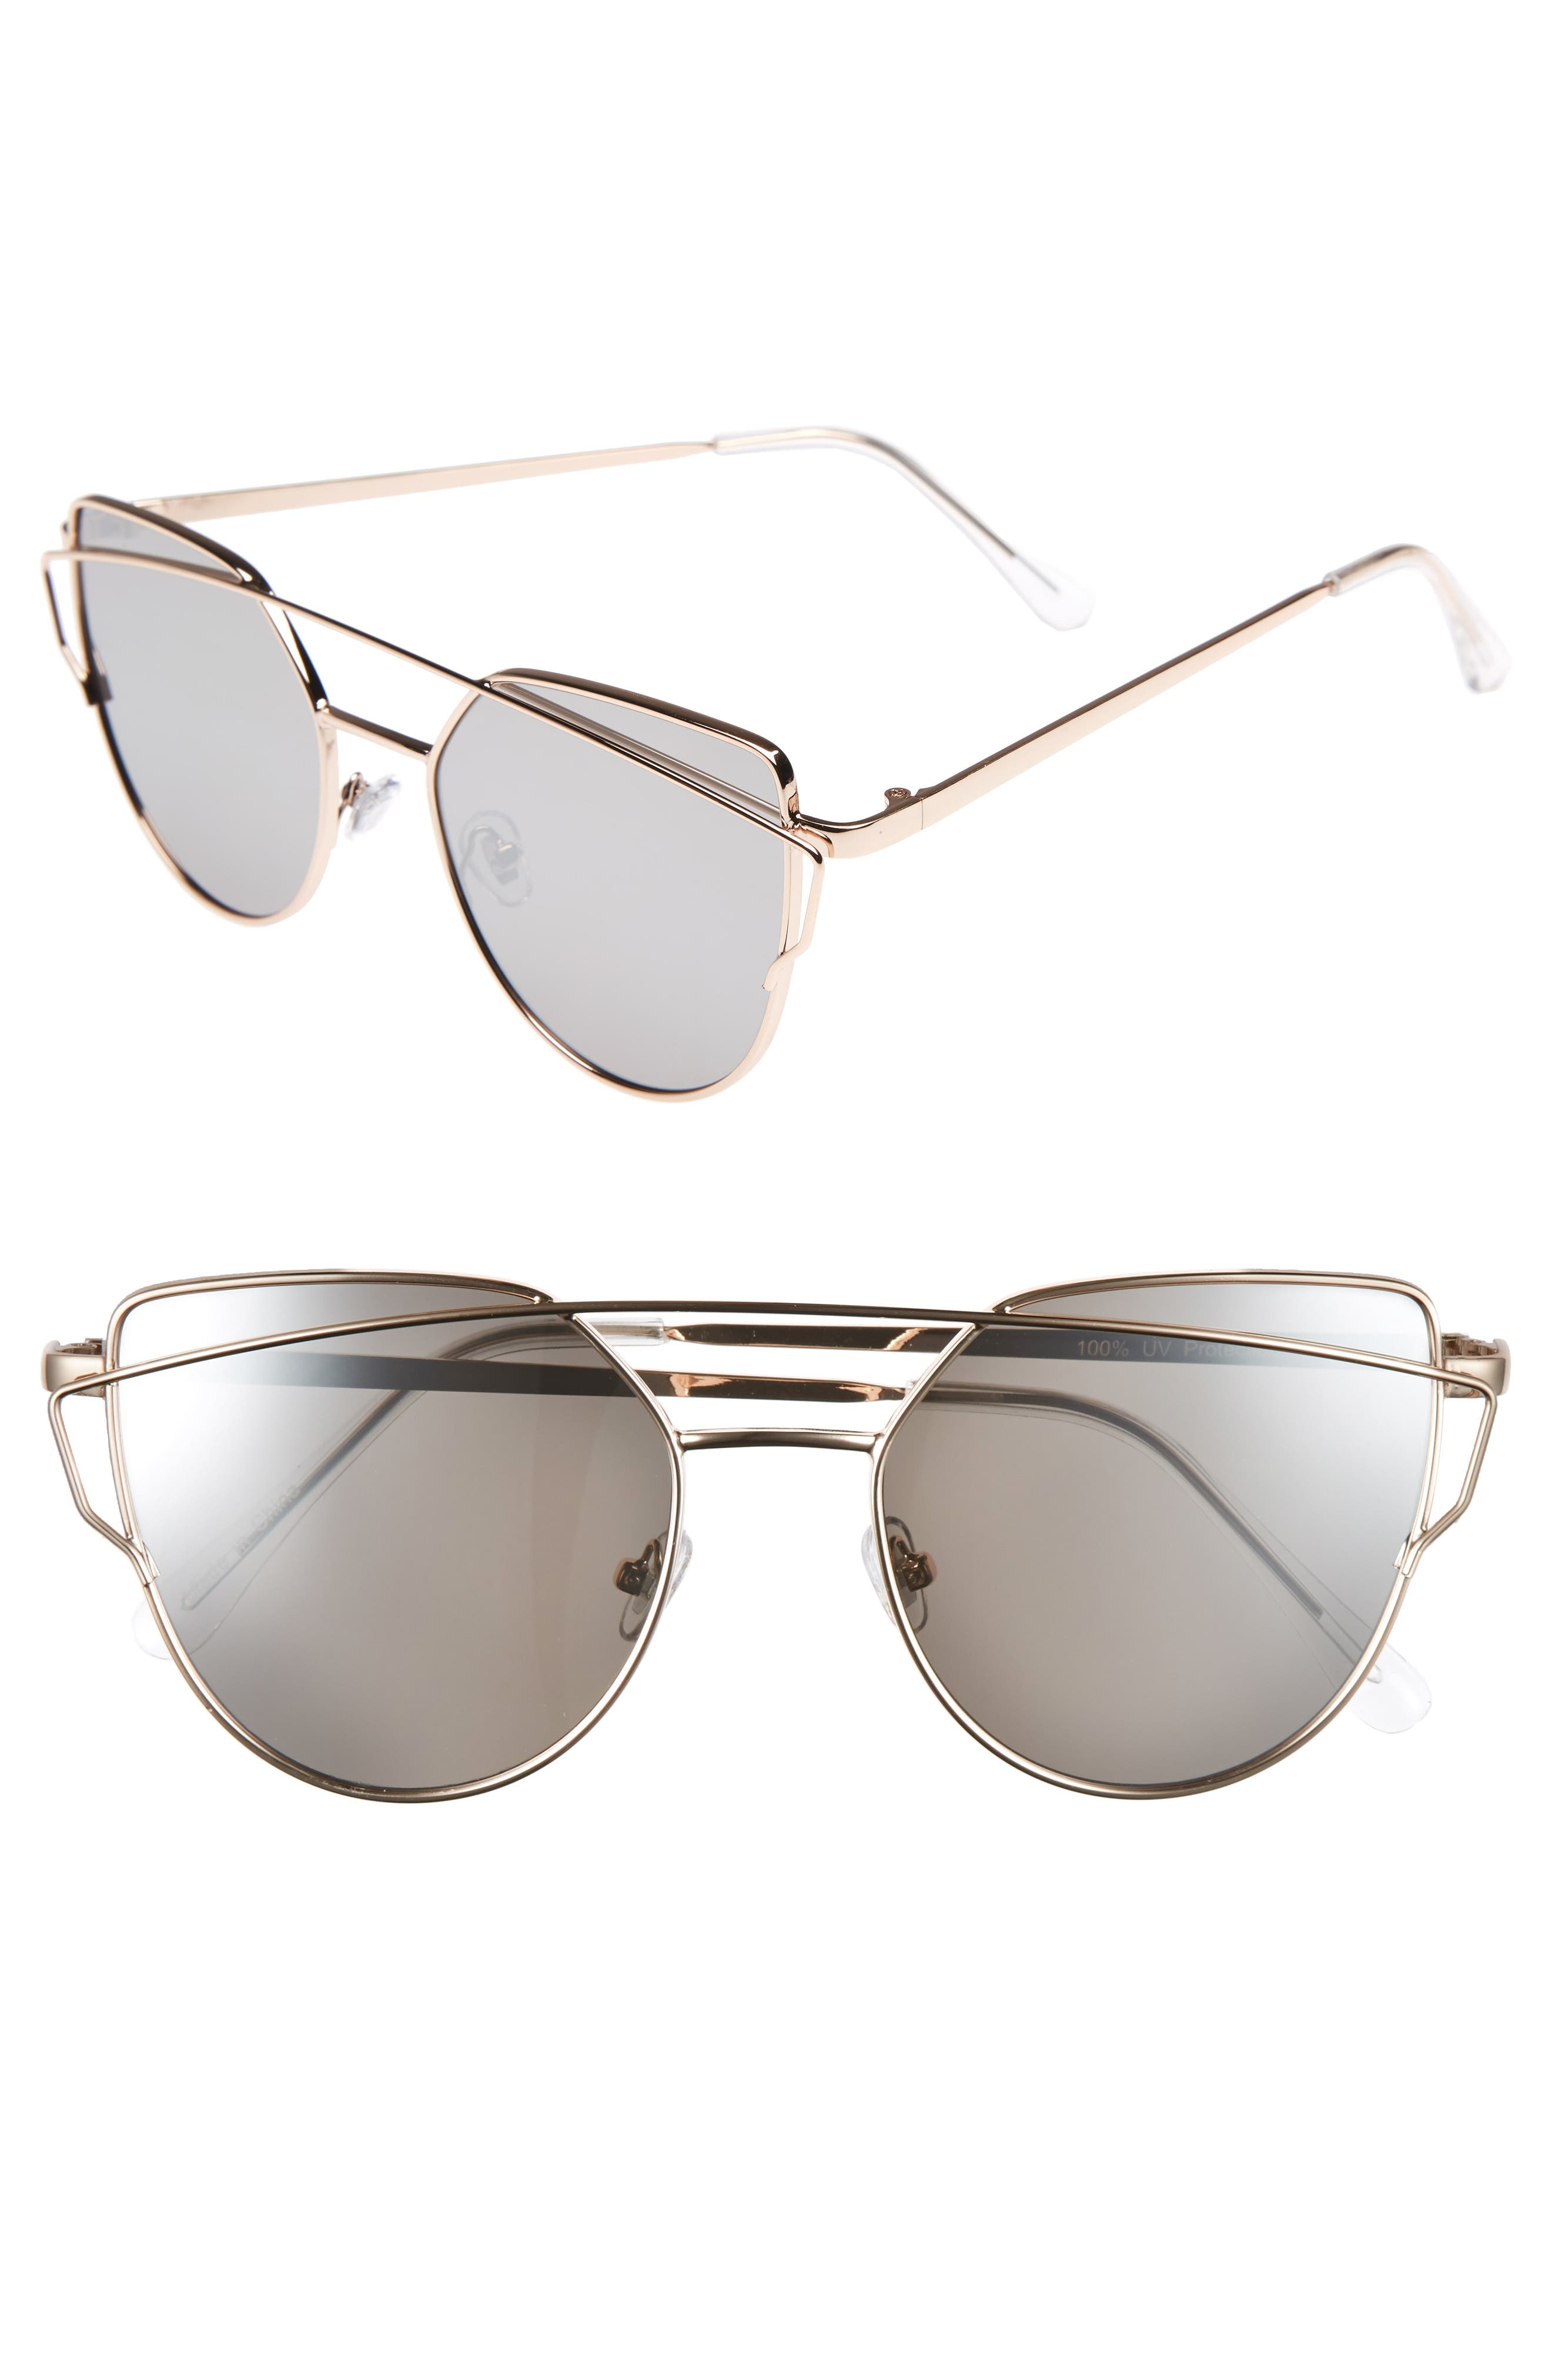 51mm Thin Brow Angular Aviator Sunglasses,                             Main thumbnail 4, color,